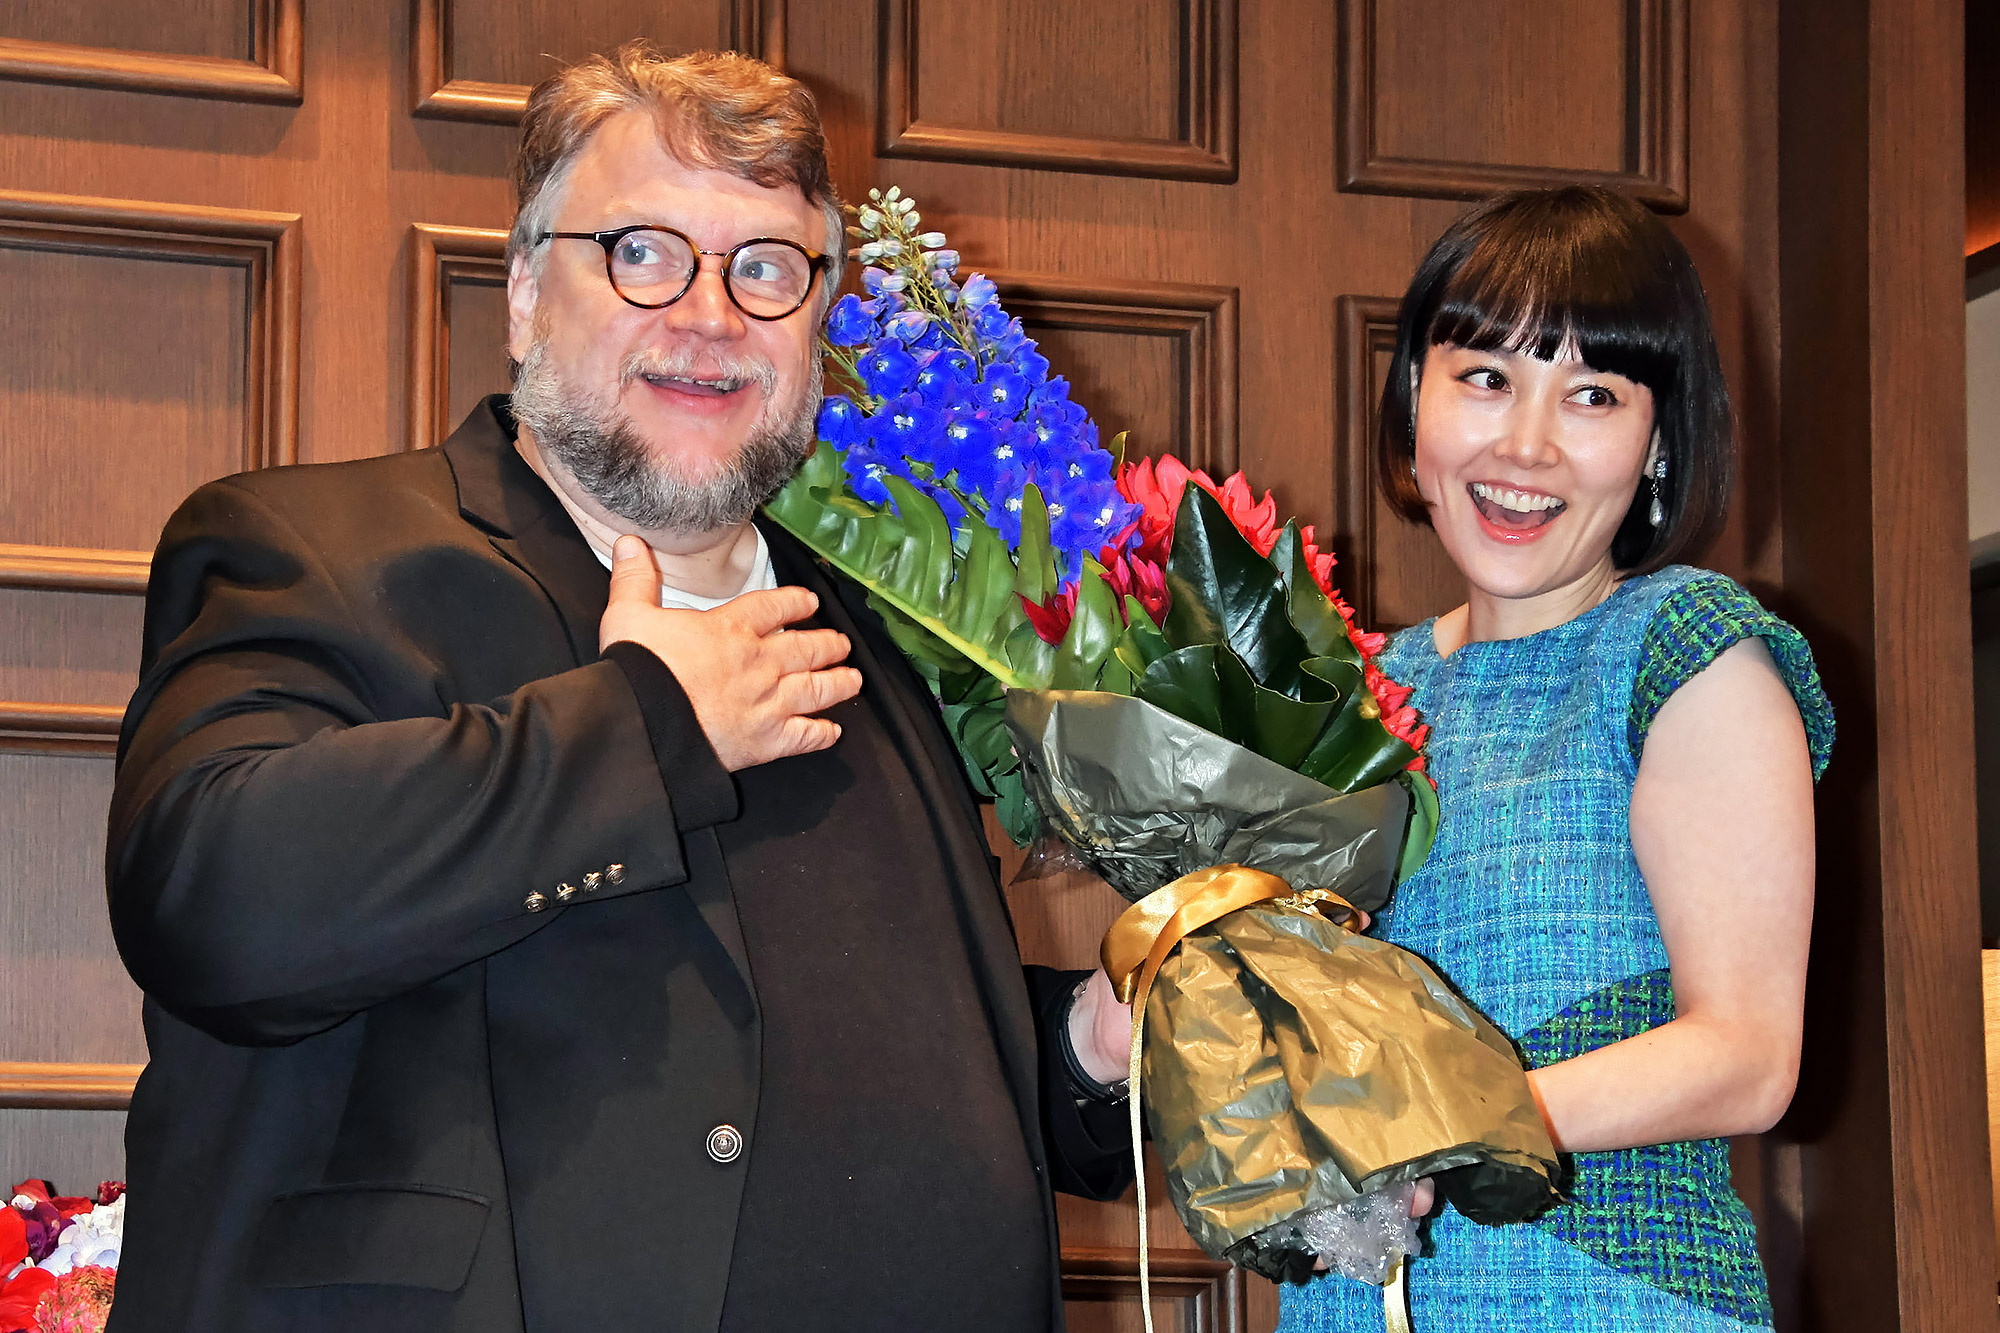 Guillermo del Toro Attends Press Conference for The Shape Of Water